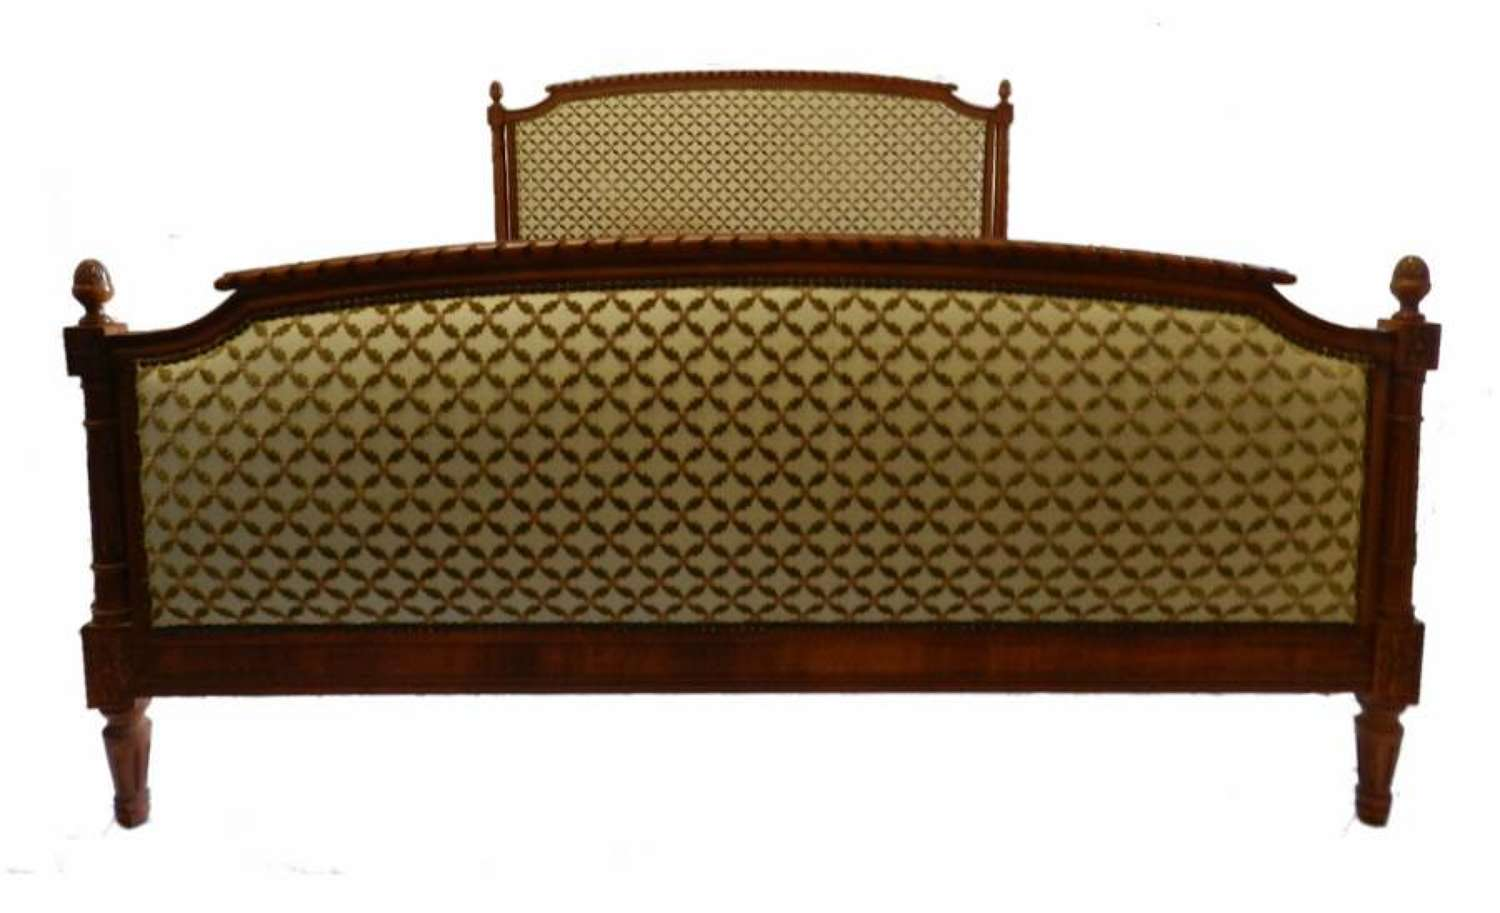 French Bed + Base upholstered Louis XVI revival UK King size US Queen